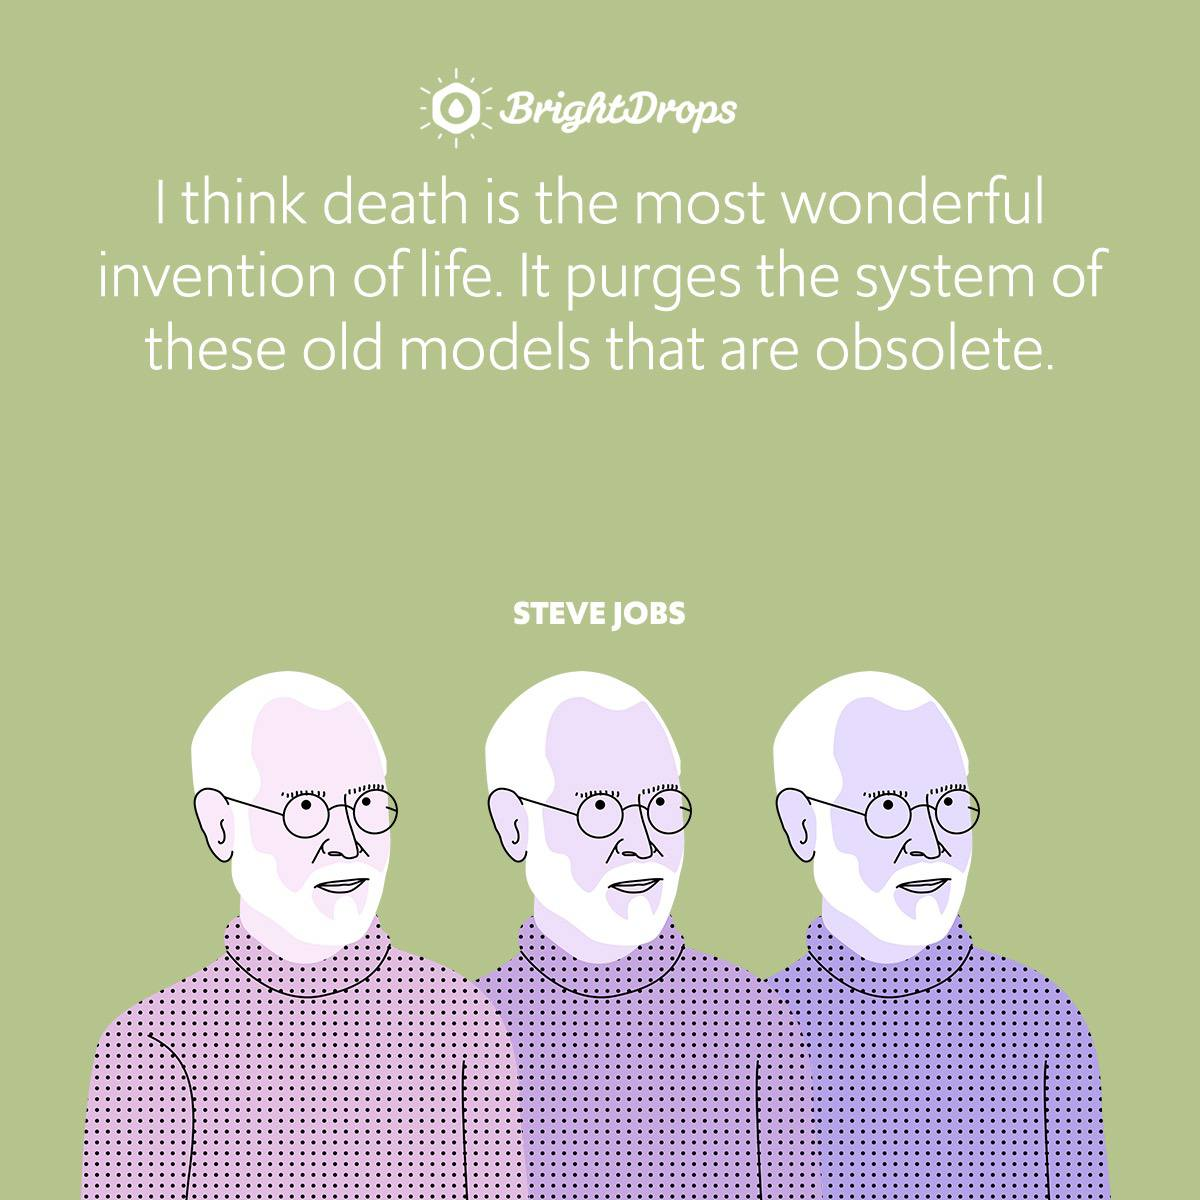 I think death is the most wonderful invention of life. It purges the system of these old models that are obsolete.